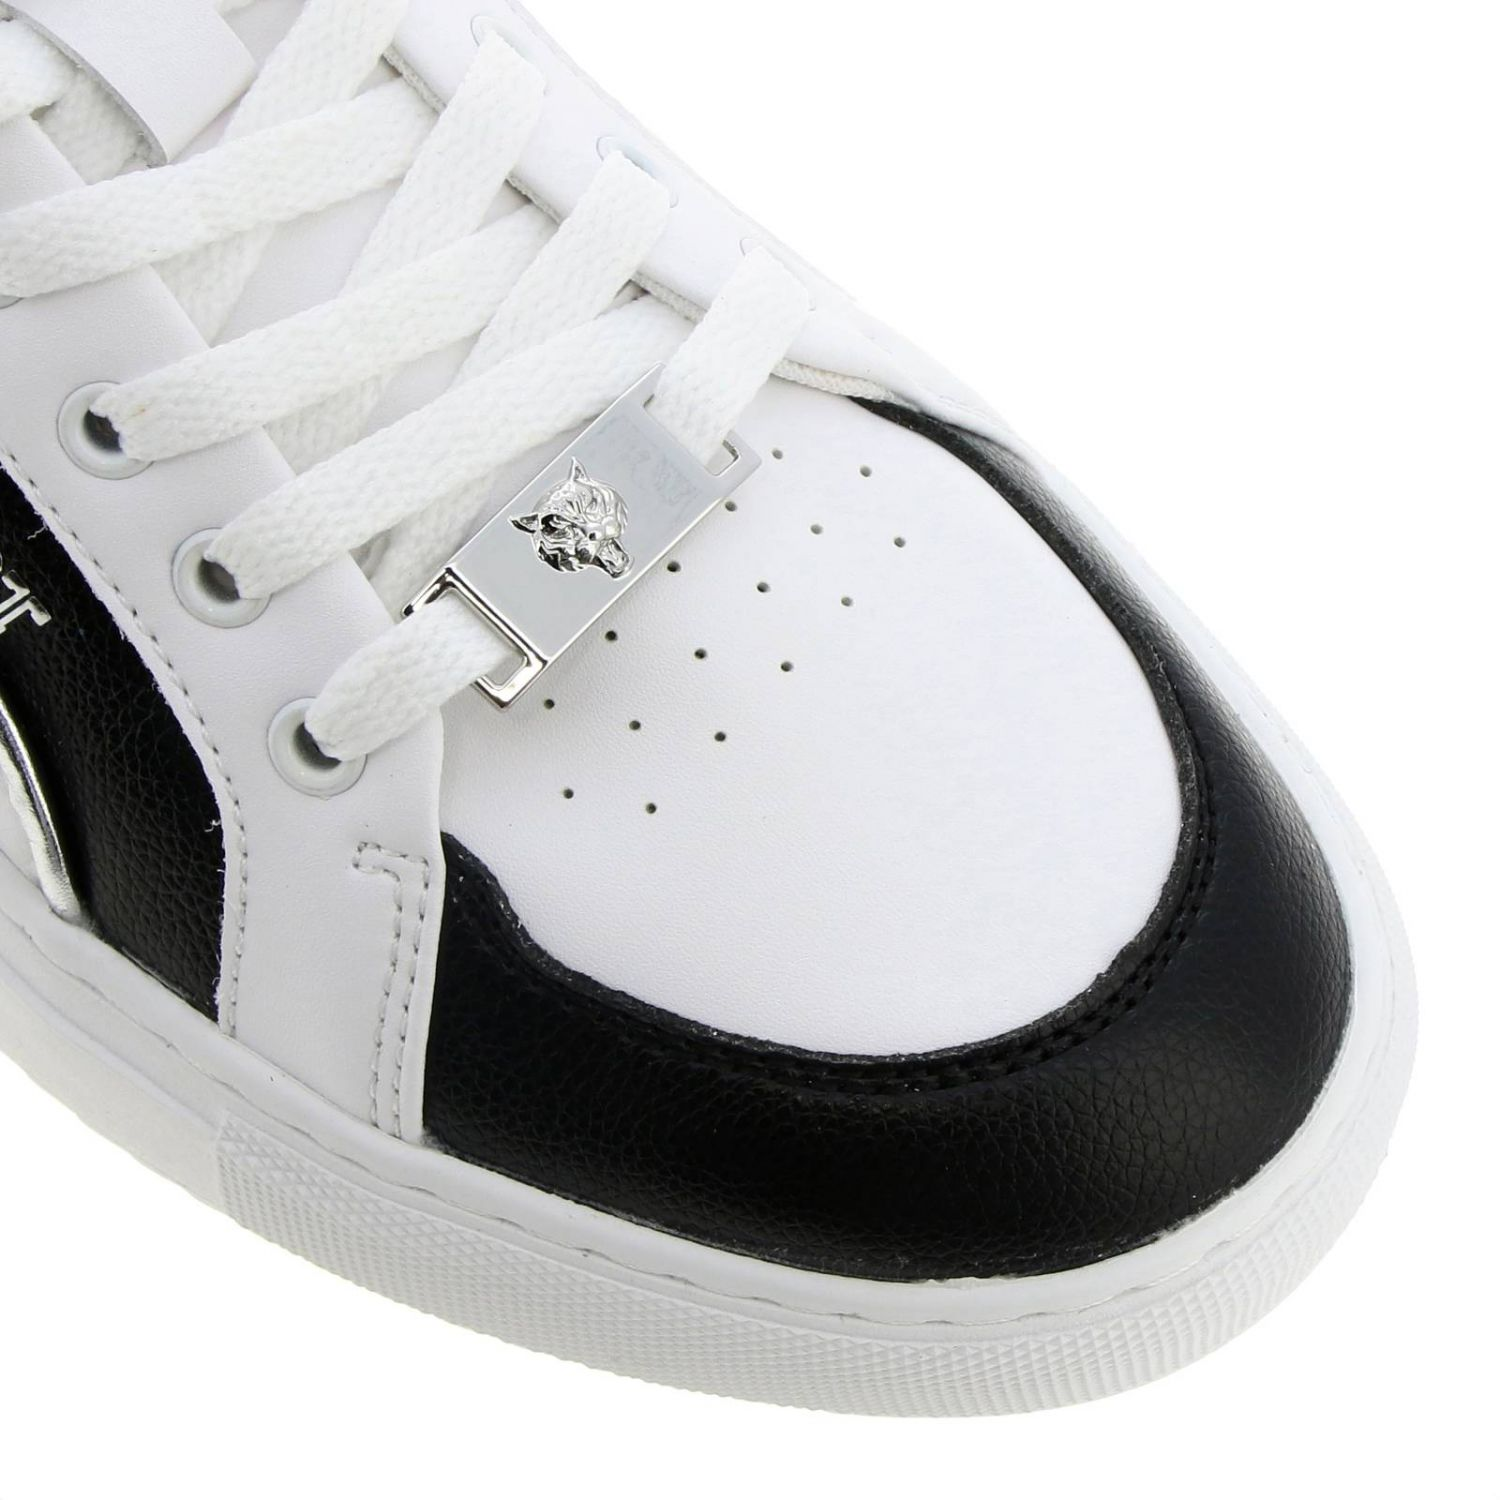 Lo-top Sneakers Cross Tiger Plein Sport in bicolor leather with logo white 3